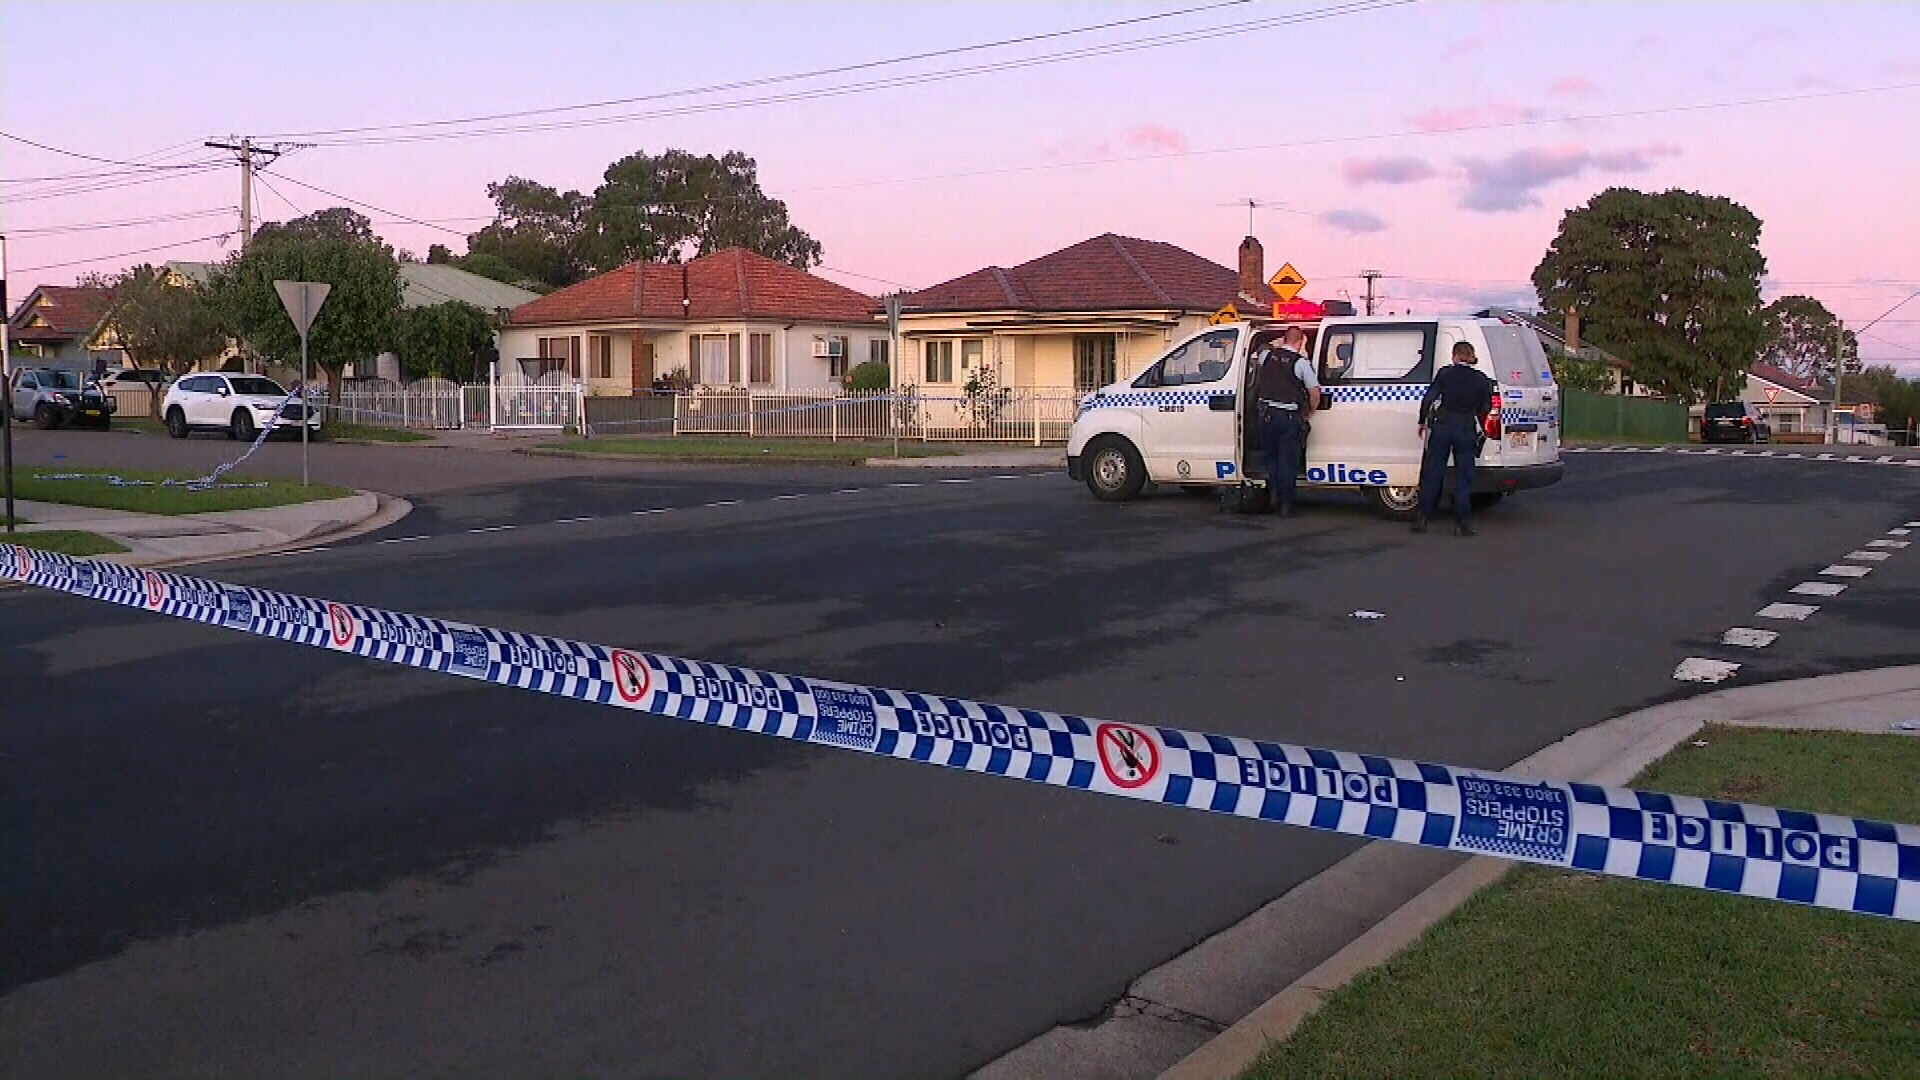 Police appeal for witnesses after man shot in head in Sydney's west